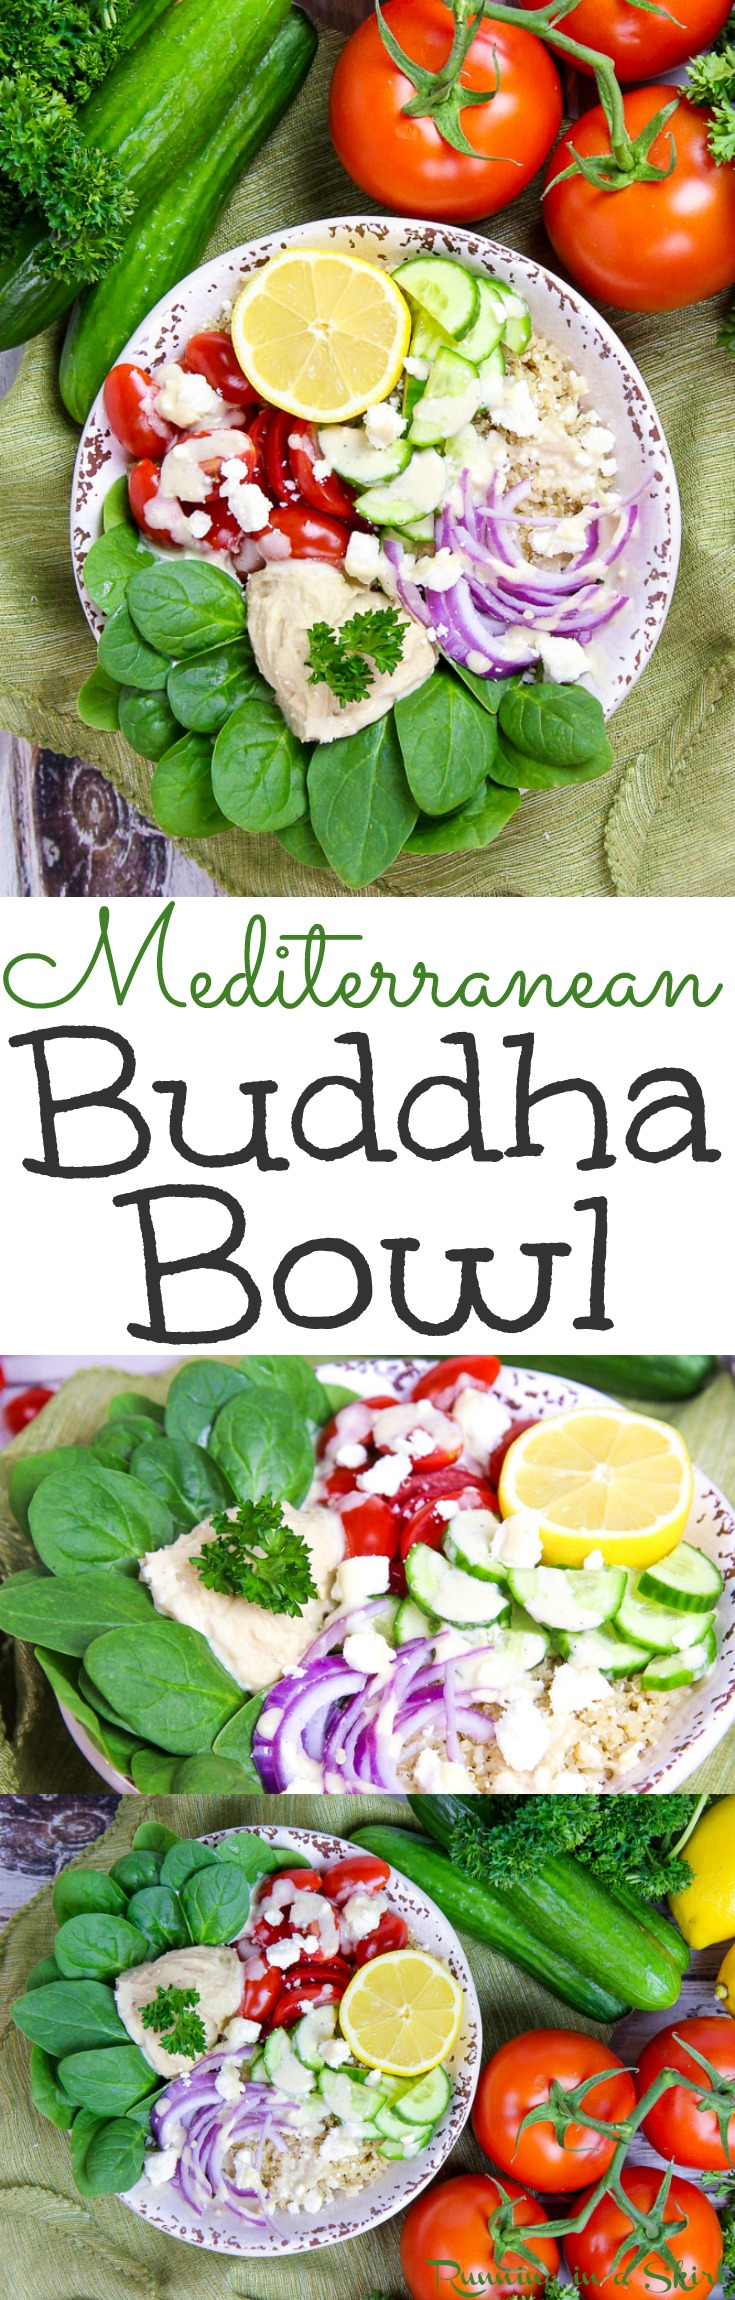 Healthy Mediterranean Buddha Bowl recipe with Lemon Tahini Dressing. Looking for easy plant based healthy recipes for dinner or lunch? Try this power bowl with simple ingredients like quinoa, spinach, hummus and the perfect sauce. Vegetarian, vegan option, gluten free and low carb! / Running in a Skirt via @juliewunder